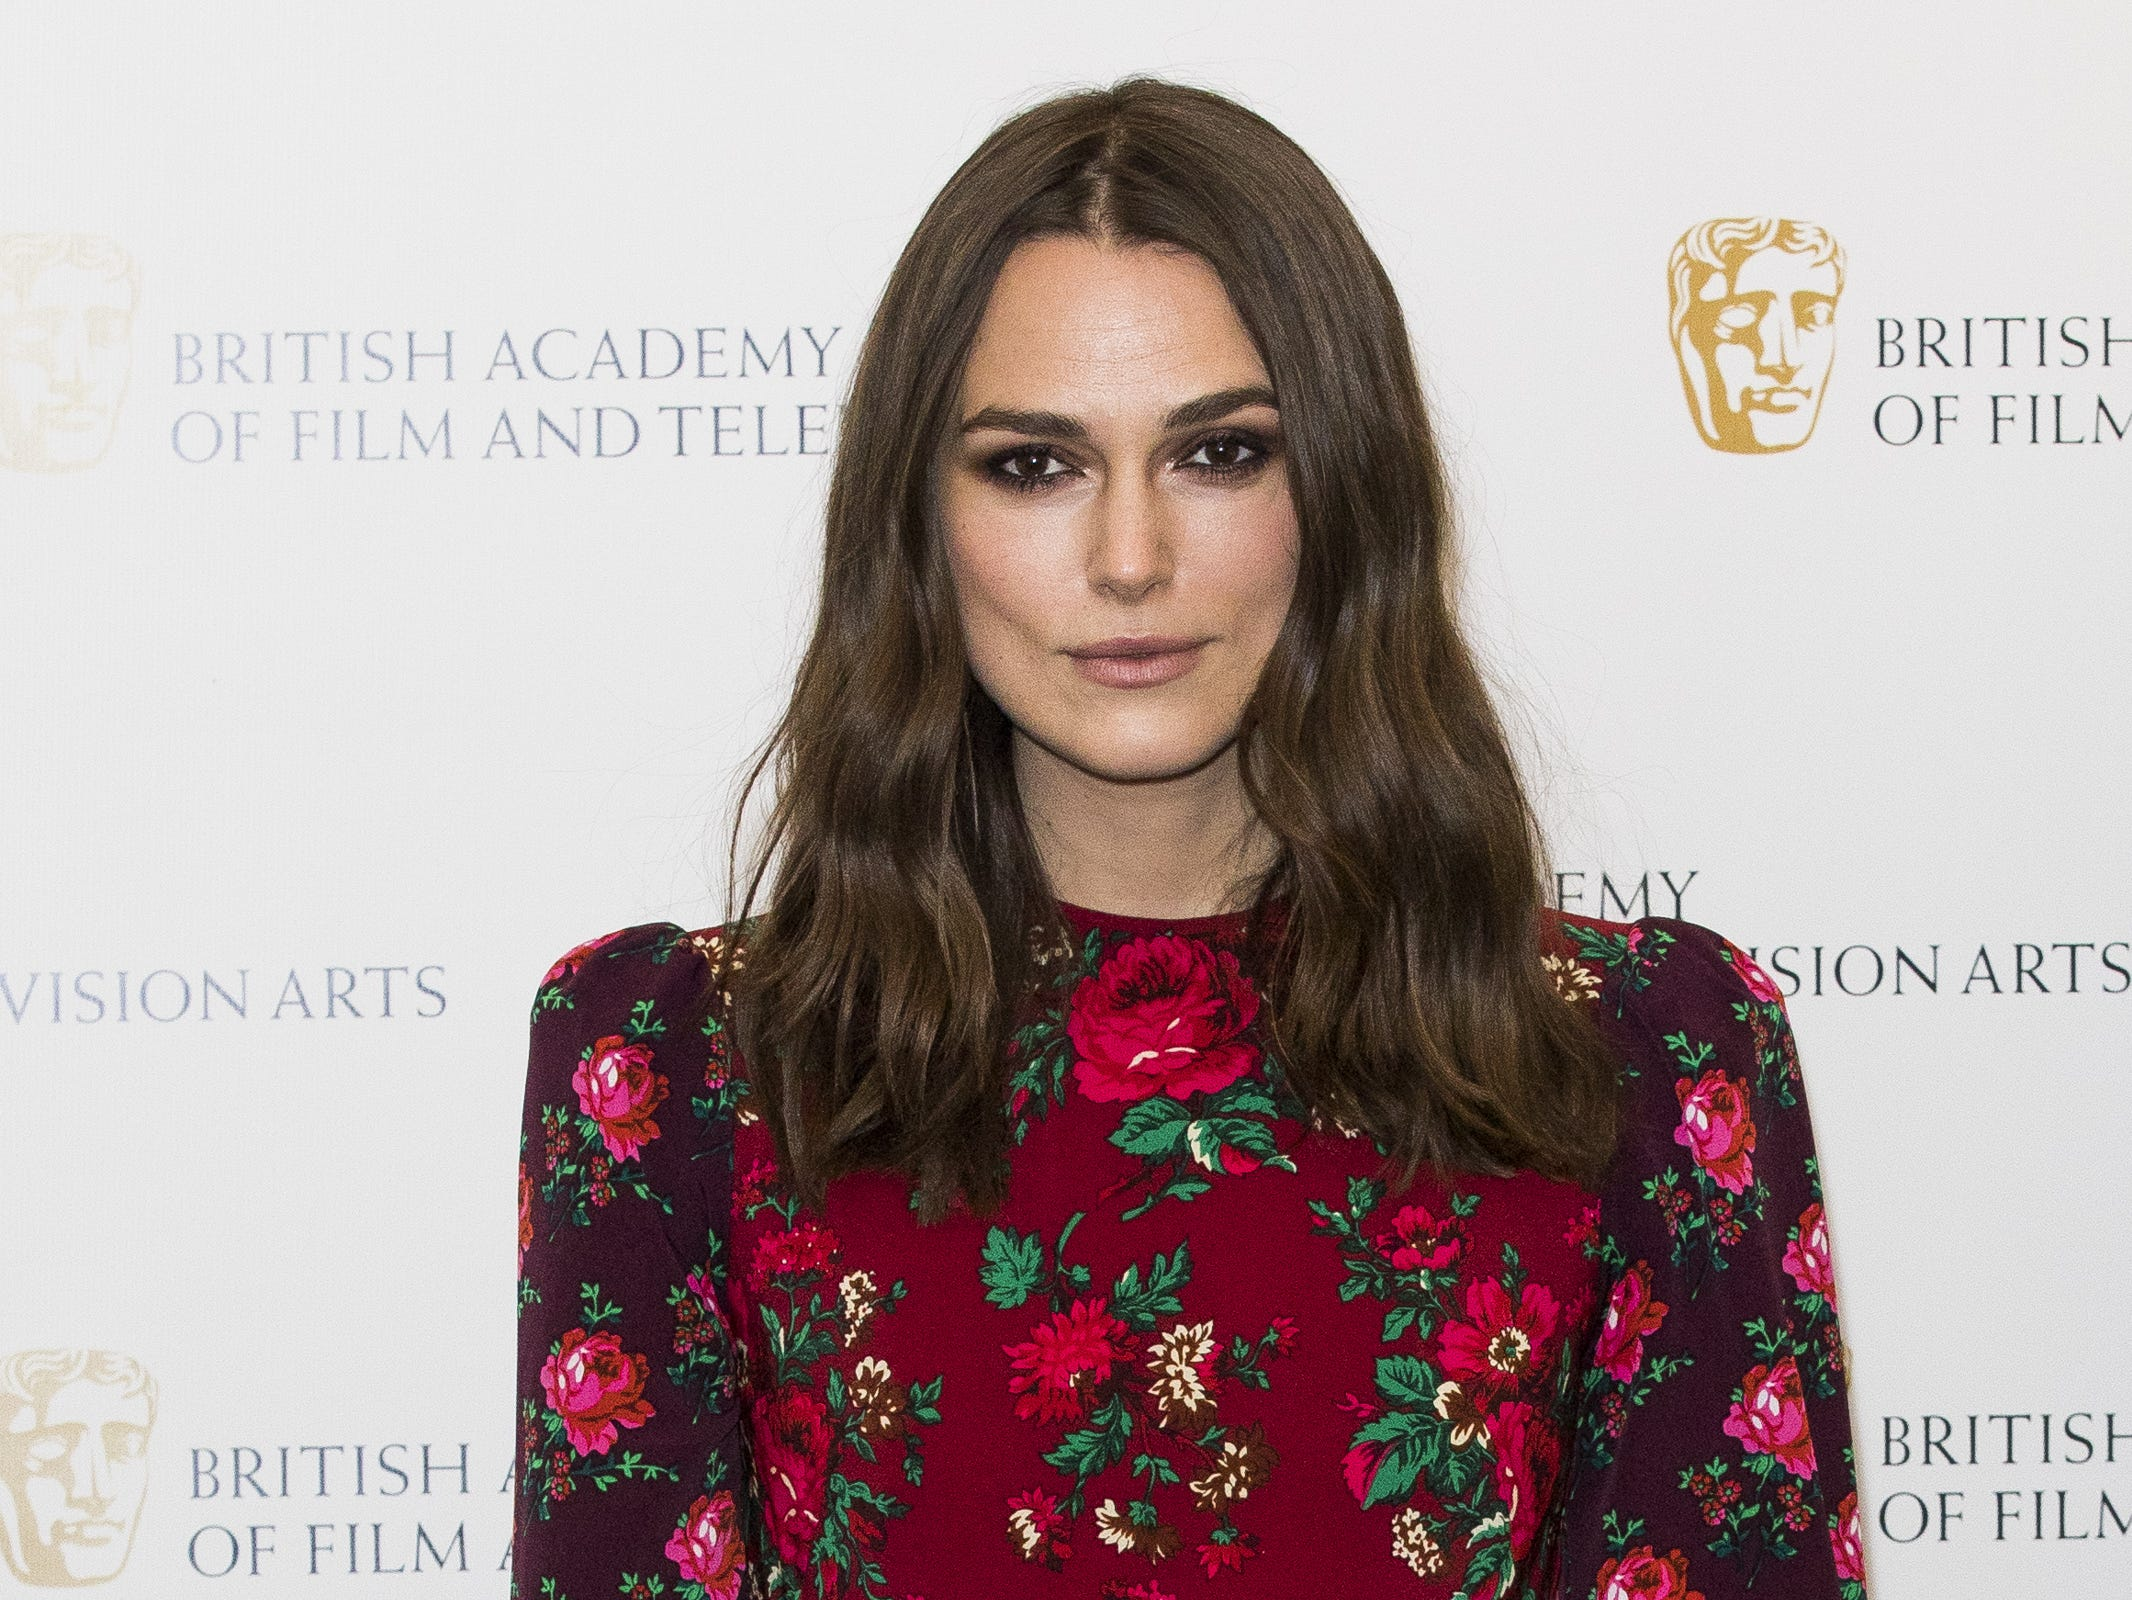 LONDON, ENGLAND - DECEMBER 17: Keira Knightley attends her 'A Life In Pictures' photocall at BAFTA on December 17, 2018 in London, England. (Photo by Tristan Fewings/Getty Images) ORG XMIT: 775270351 ORIG FILE ID: 1083797384